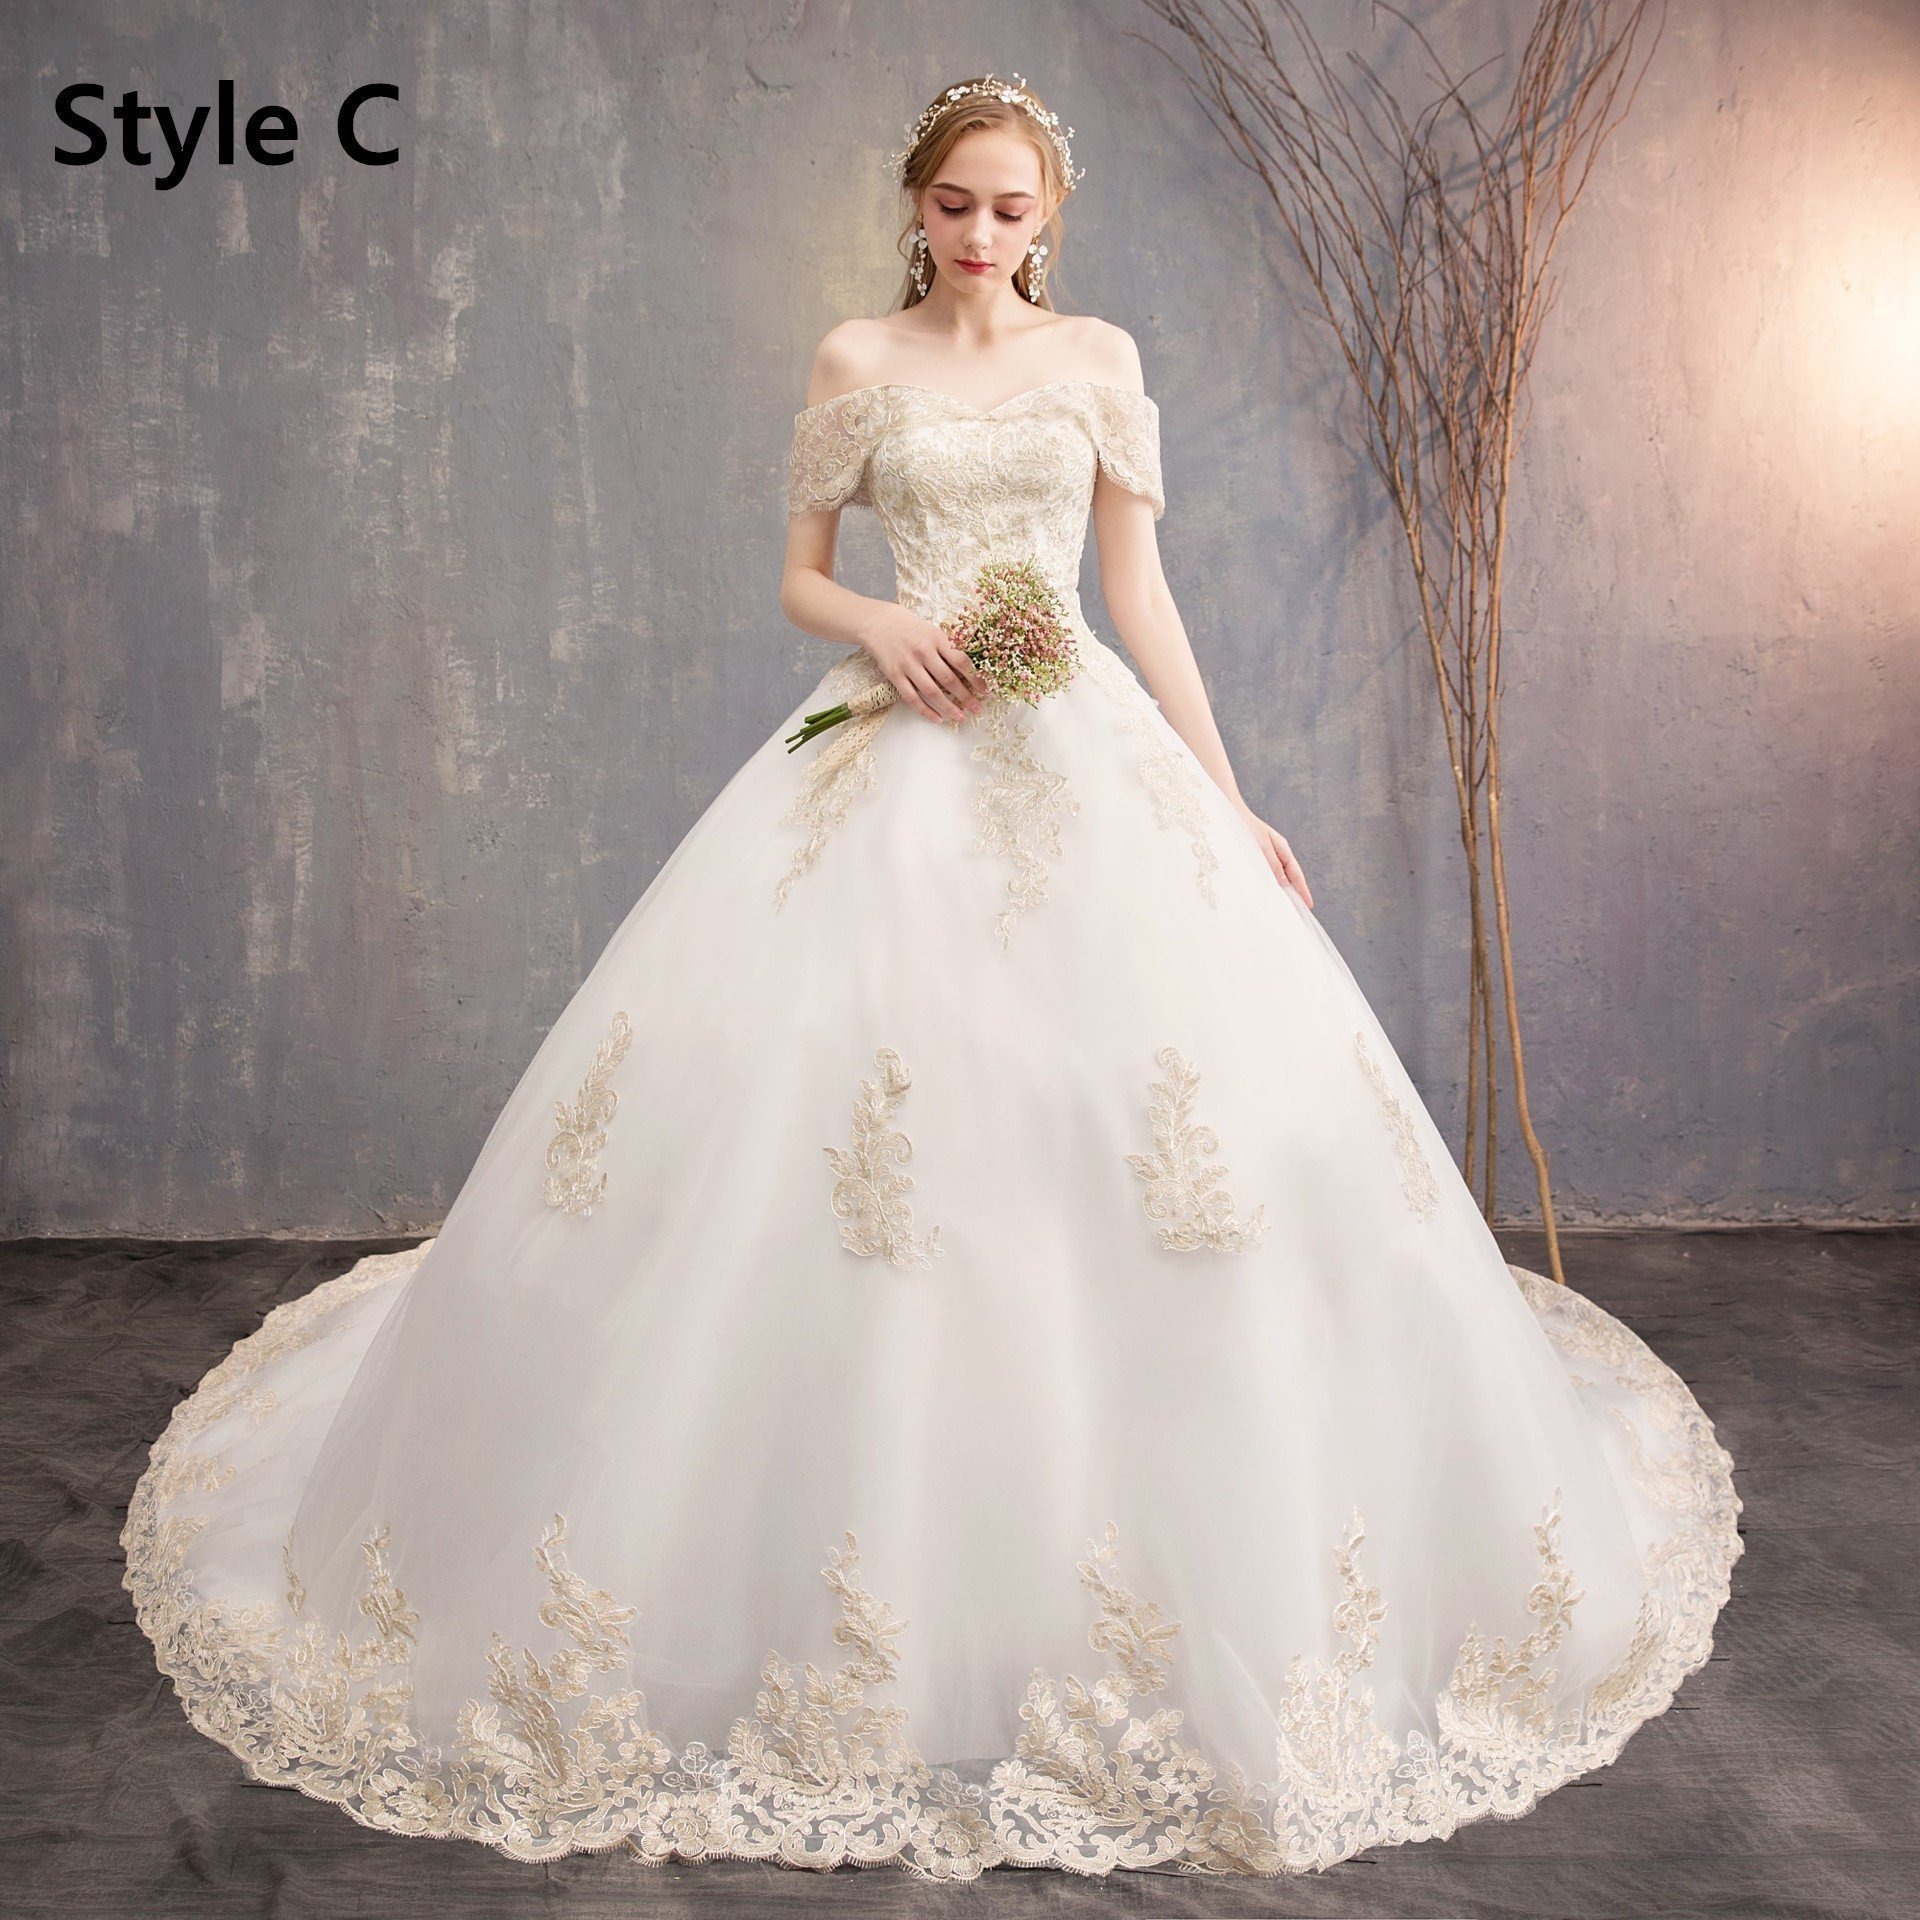 Best Wedding Dresses Lace Dresses Flower Girl Dresses With Burgundy Sash White Slip Dress Wedding Bells Rajouri Garden Marriage Proposal Ideas Mini Bride Dresses Pakistani Bridal Lehenga With Price